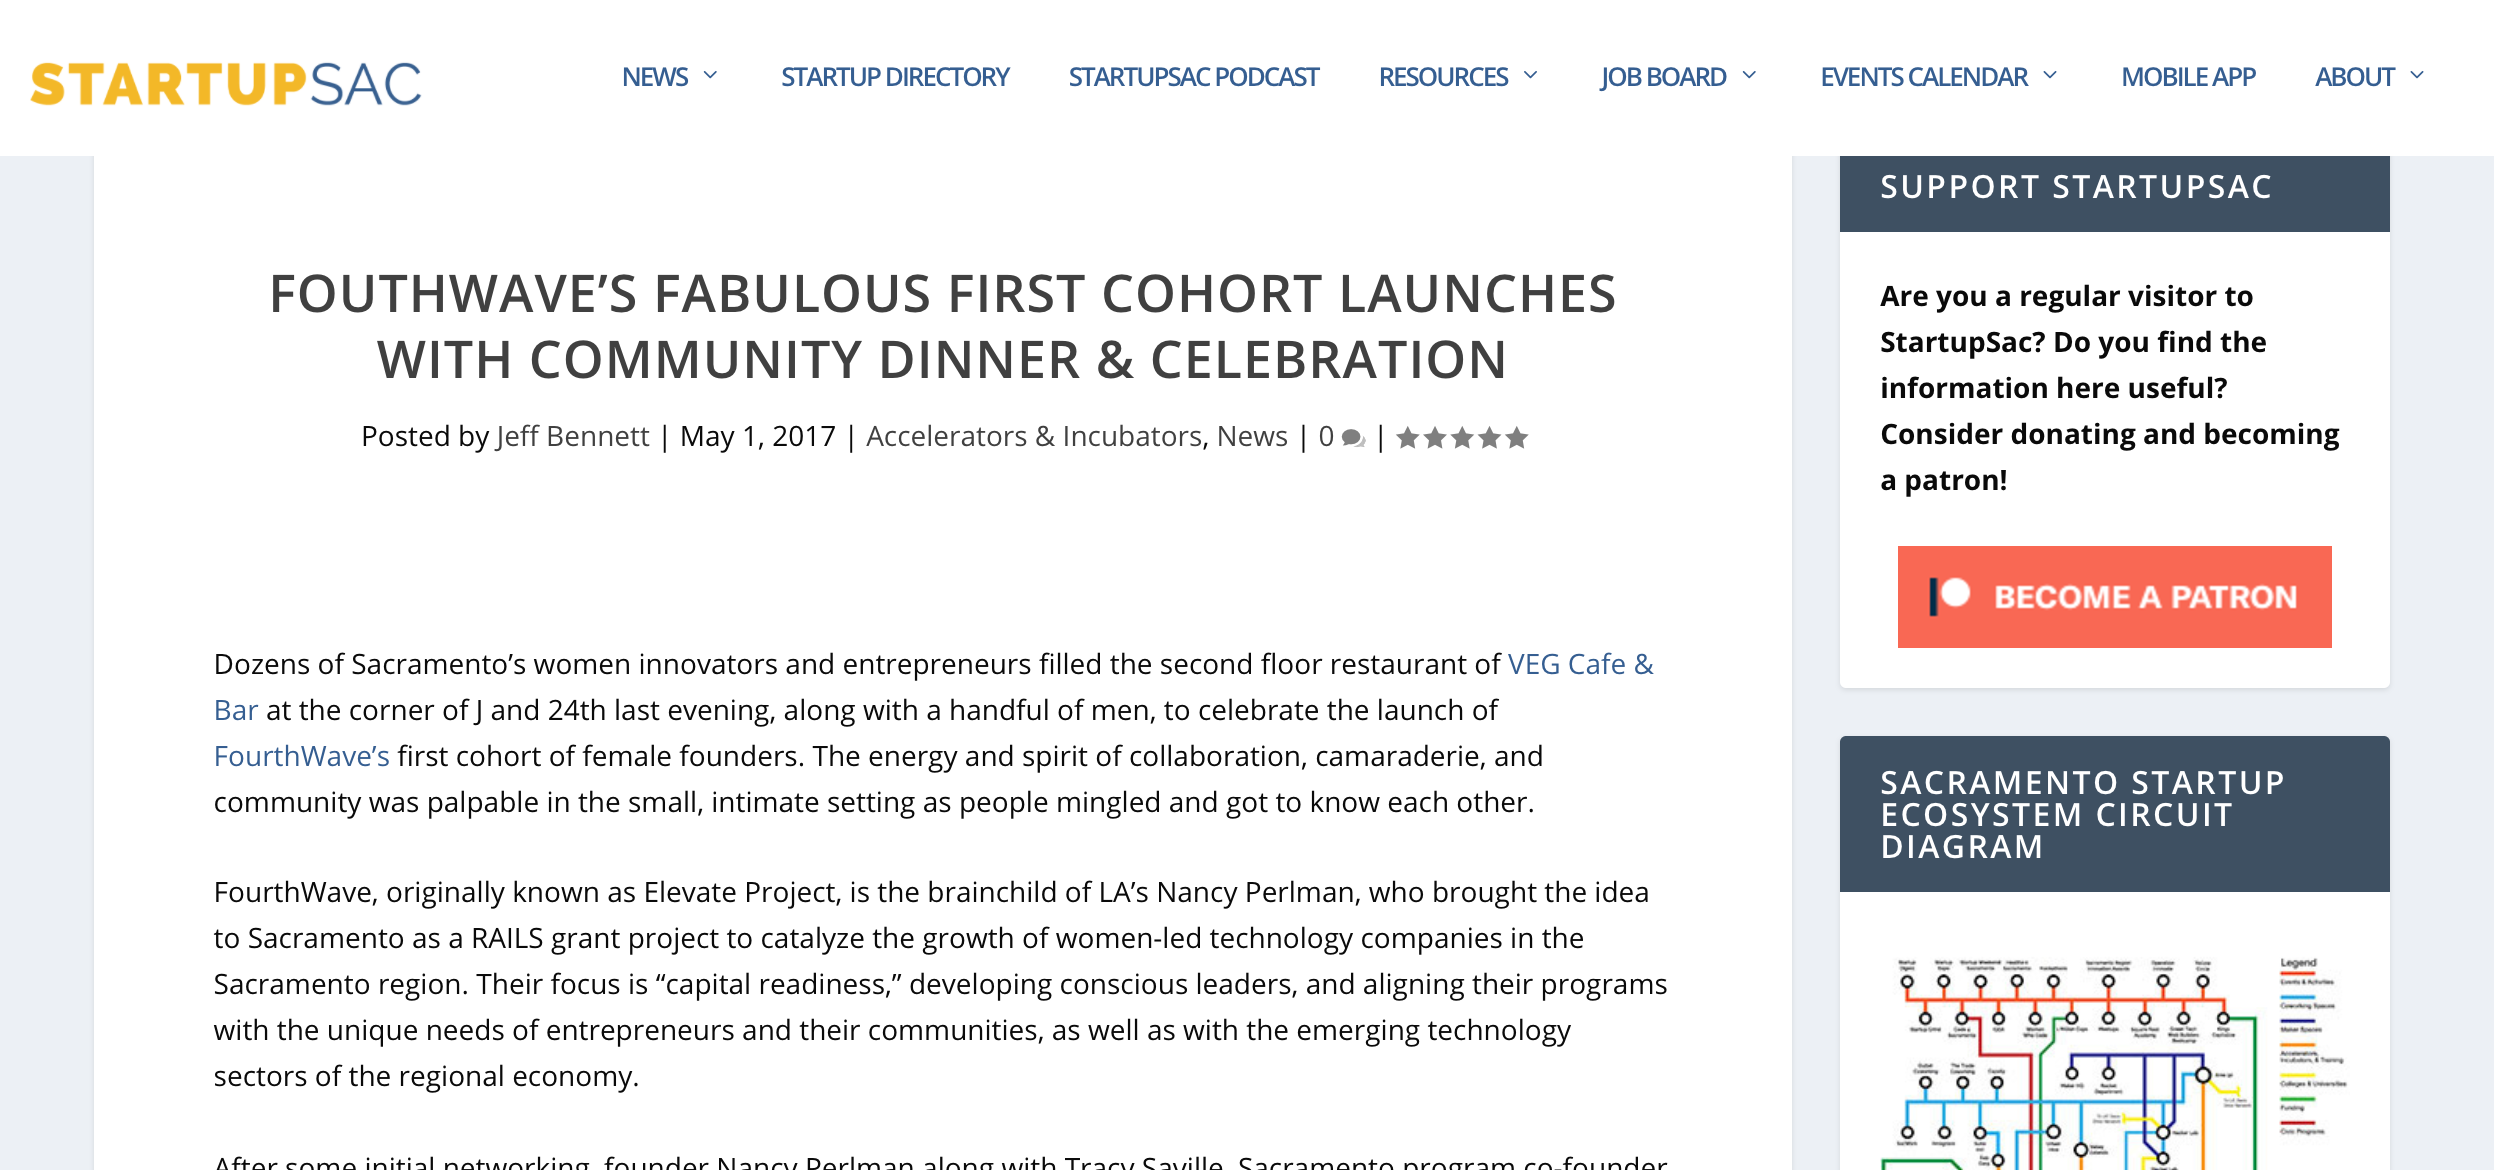 FOURTHWAVE'S FABULOUS FIRST COHORT LAUNCHES WITH COMMUNITY DINNER & CELEBRATION - Startup Sac, May 2017